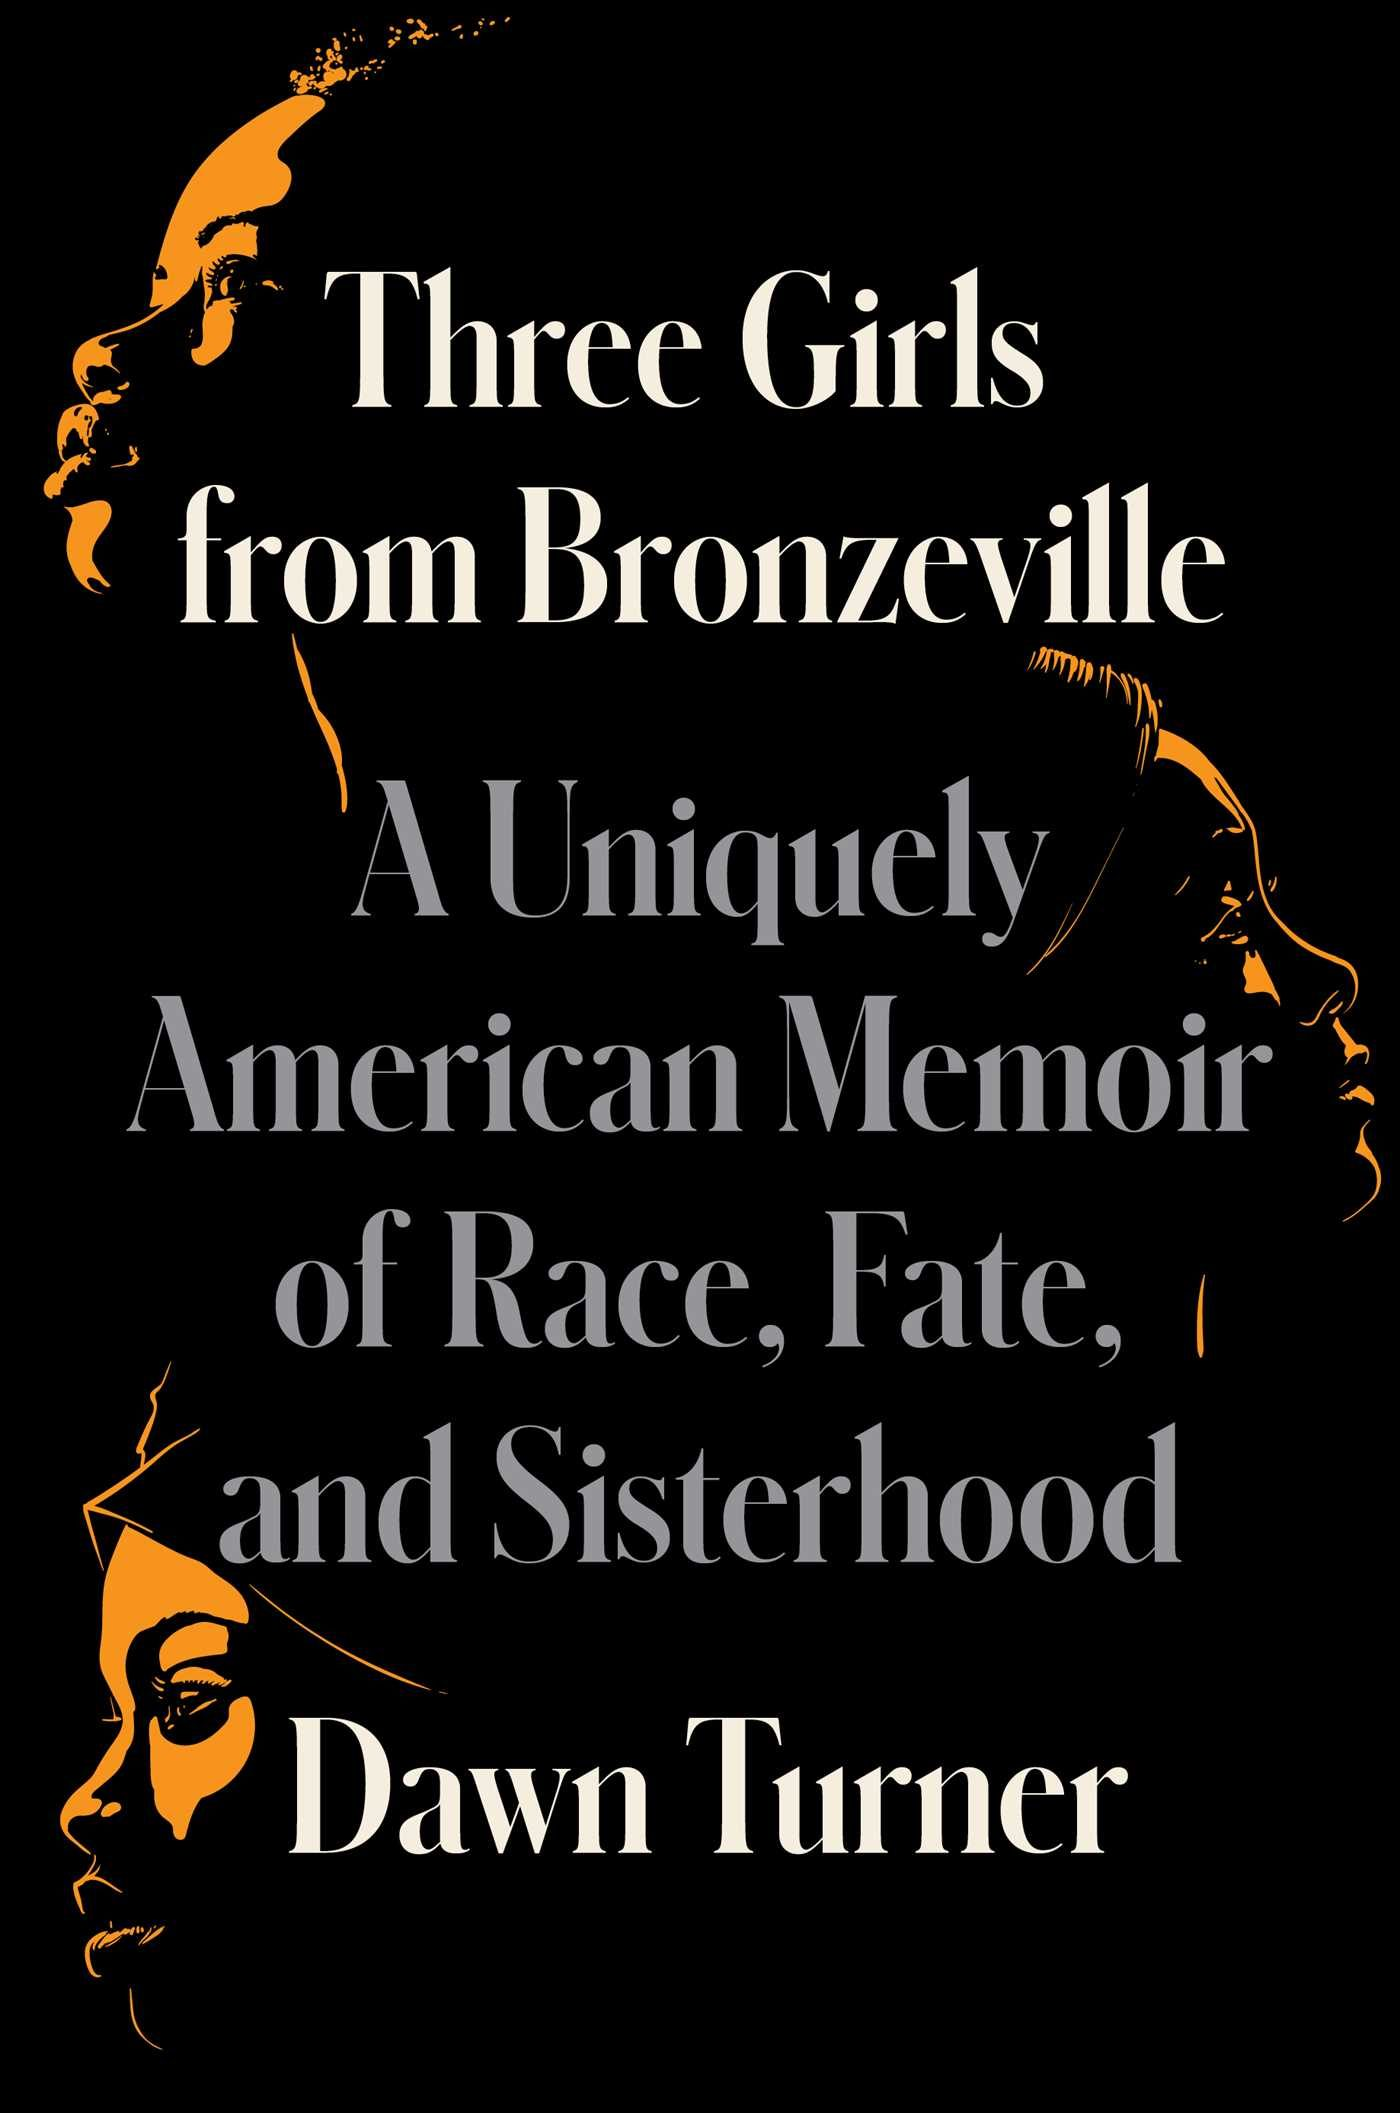 Three Girls From Bronzeville By Dawn Turner Release Date? 2021 Memoir Releases